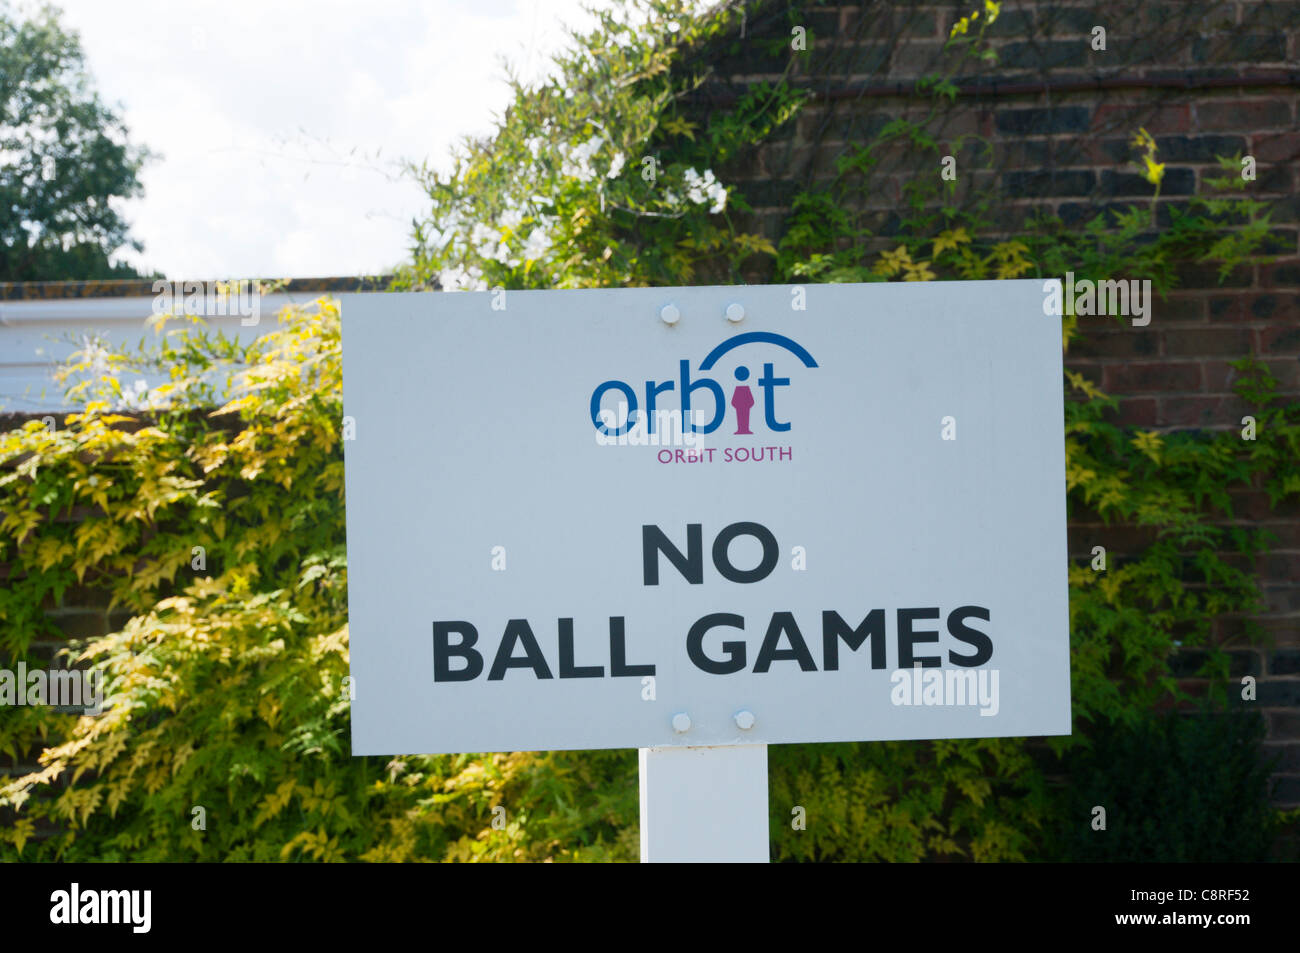 An Orbit South Housing Association sign prohibits the playing of ball games. - Stock Image